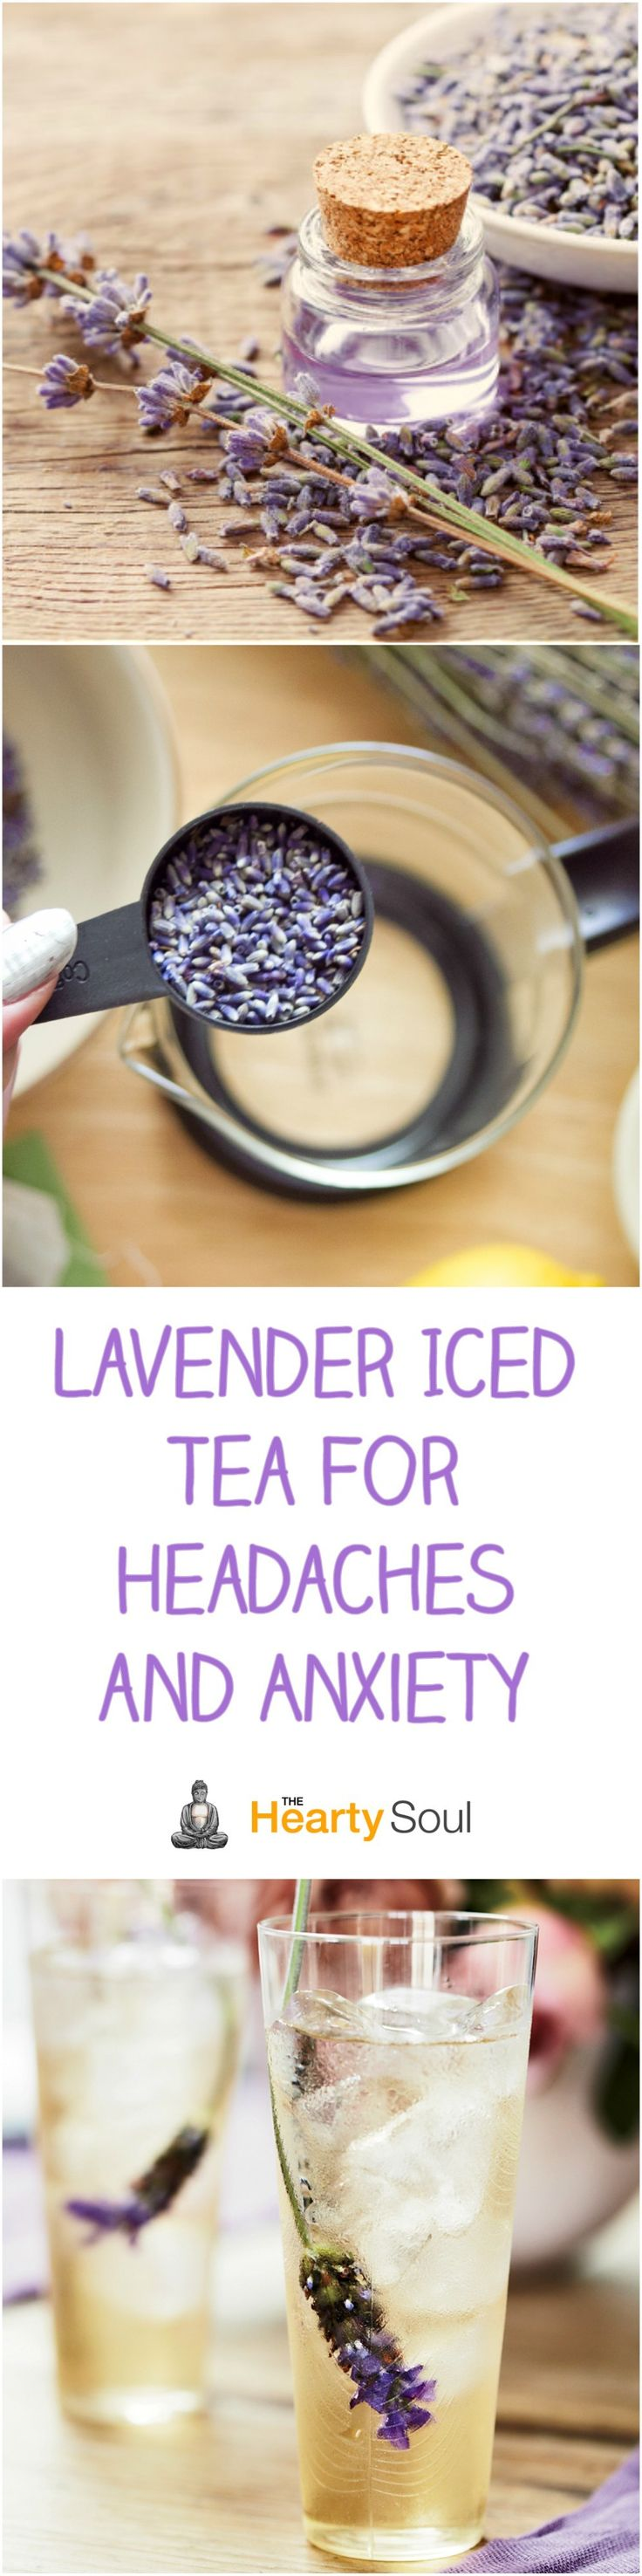 Center for holistic herbal therapy - Lavender Iced Tea For Headaches And Anxiety